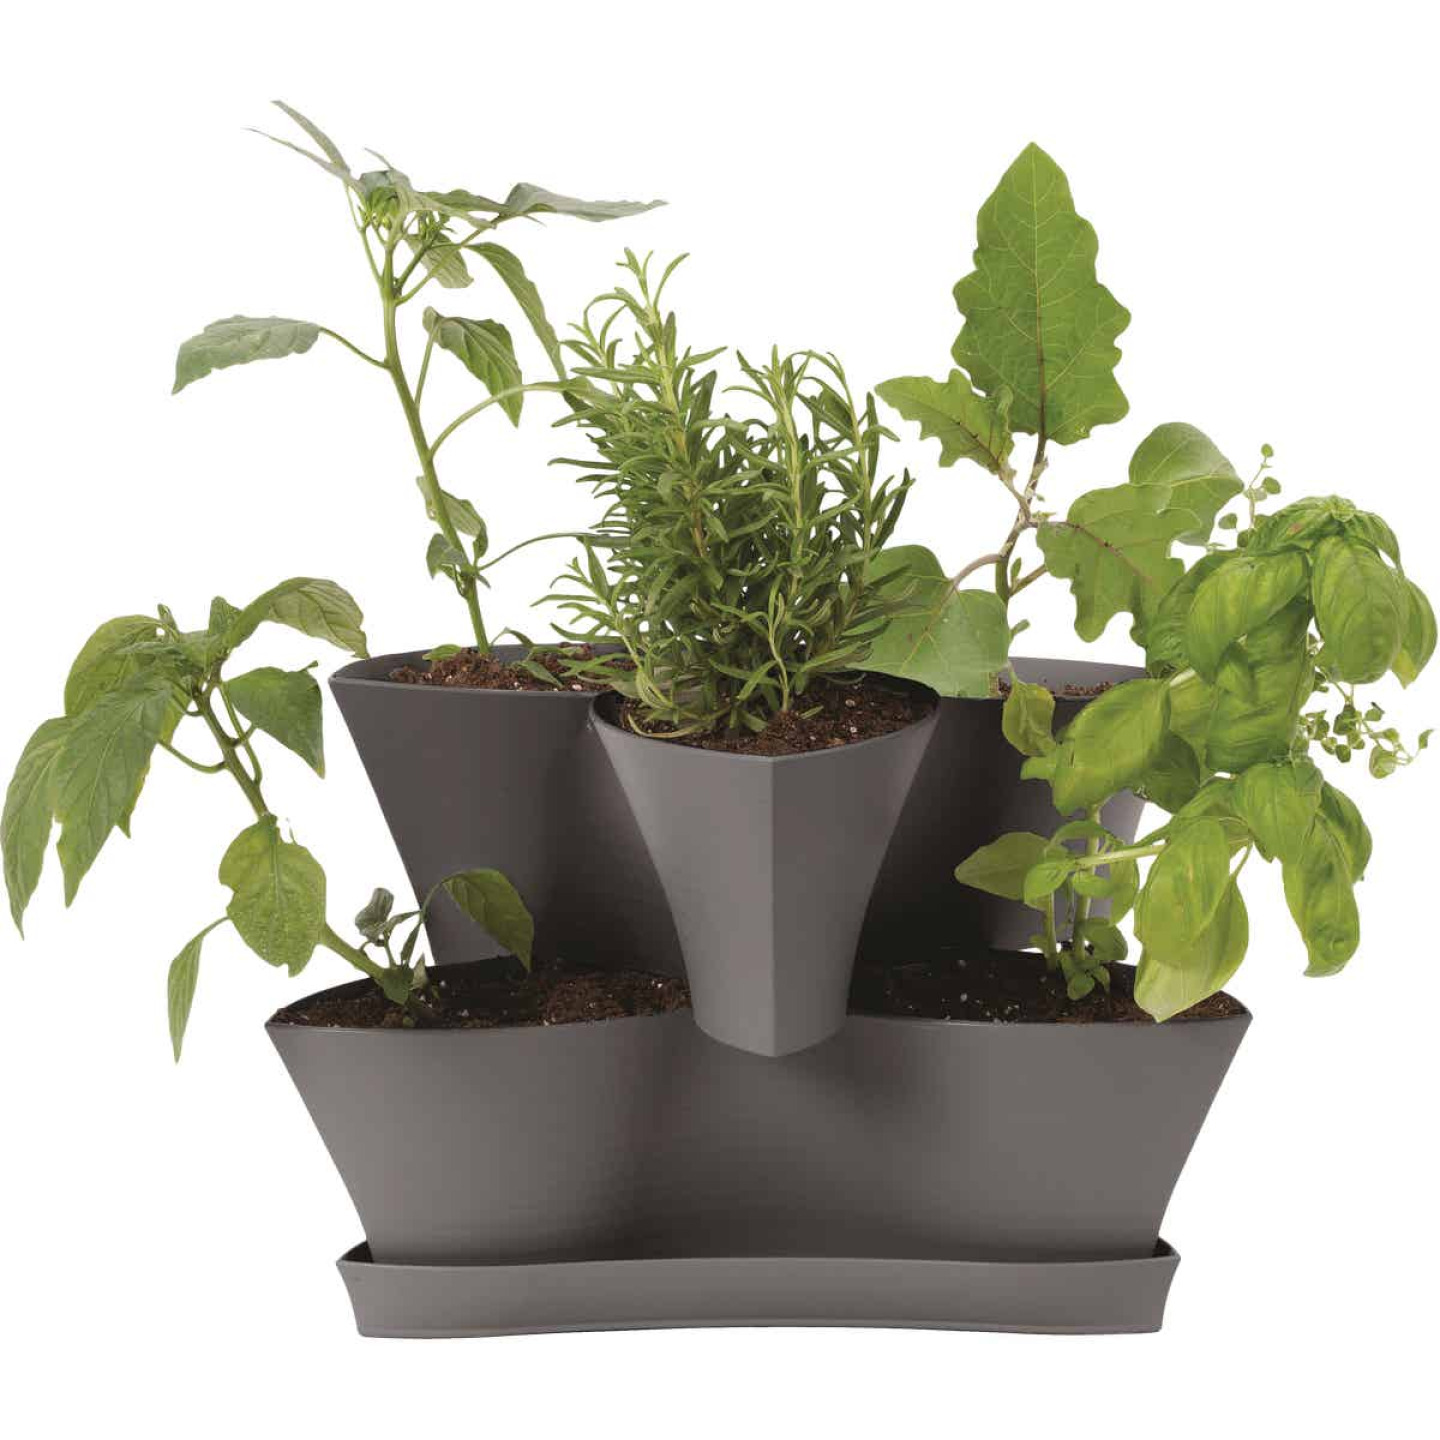 Bloem Collins 16 In. x 10.4 In. Charcoal 2-Level Planter Image 1